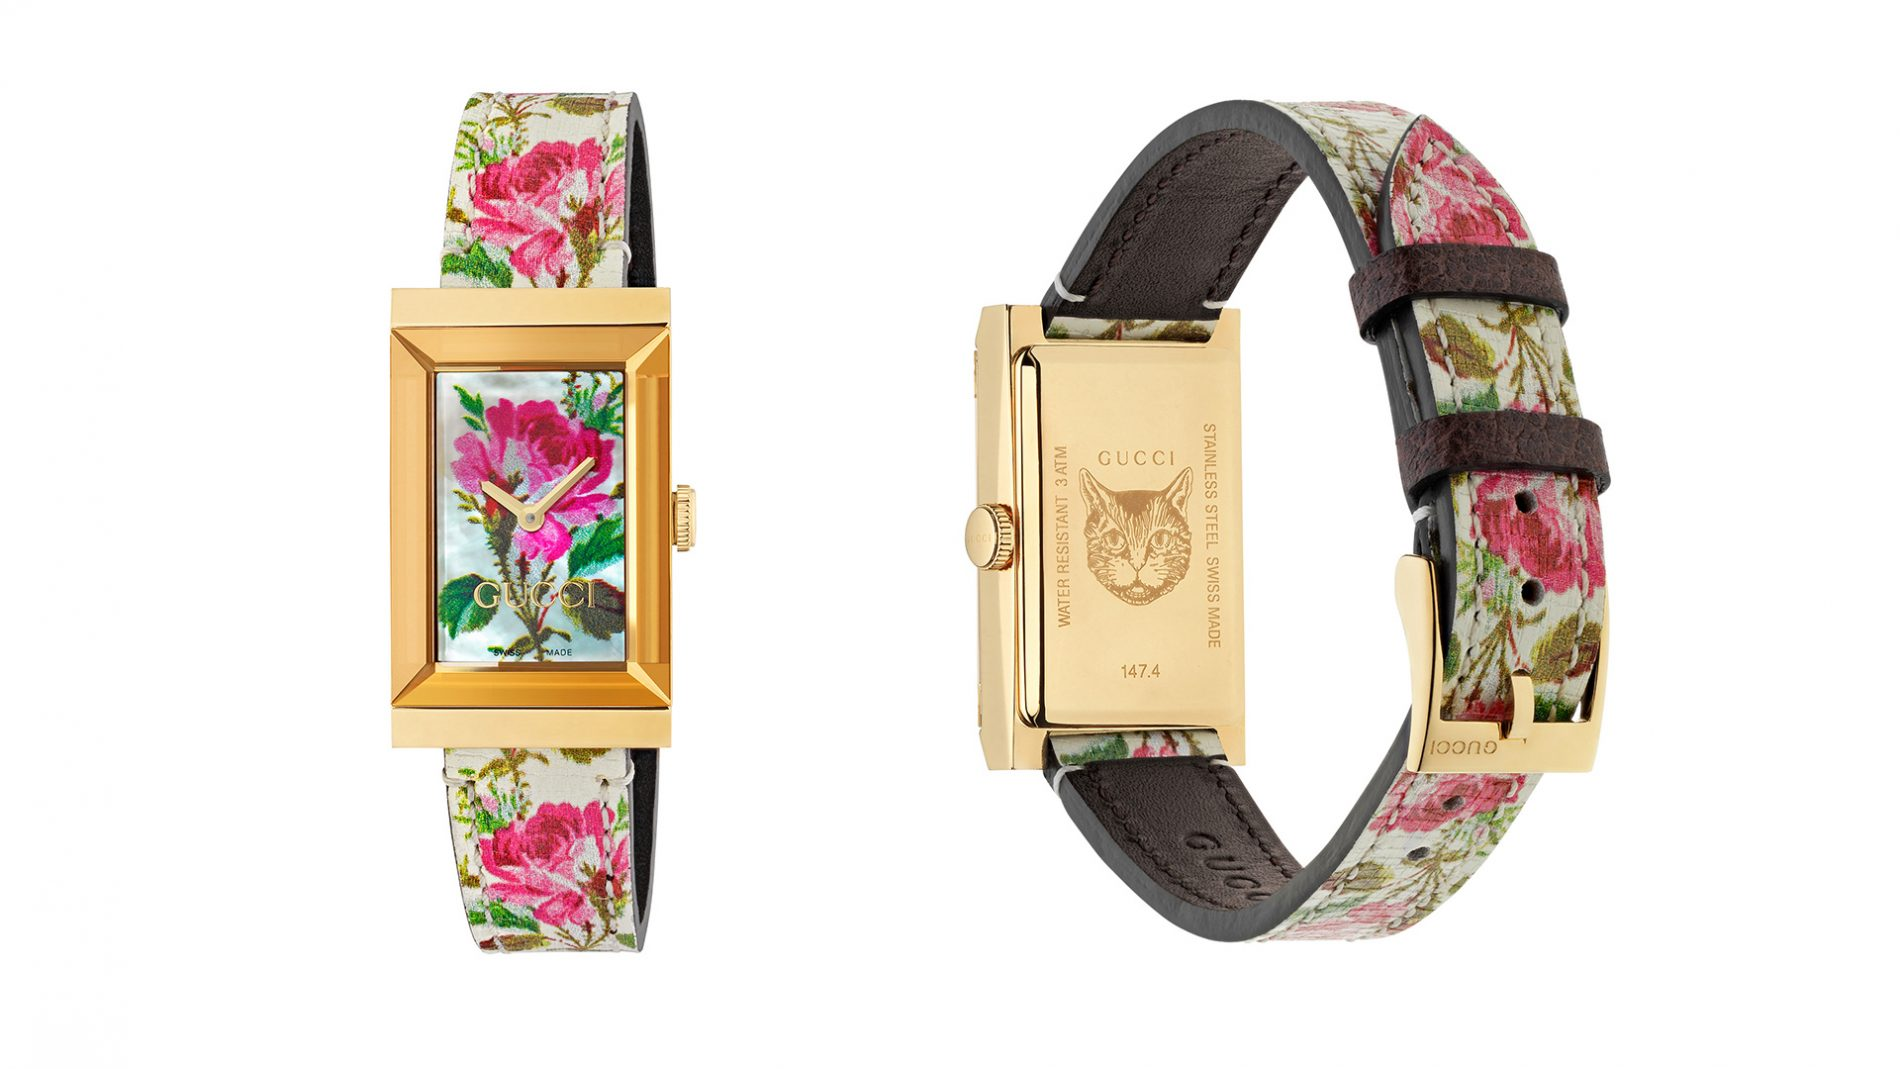 El Corte Inglés Watch Luxury Gucci Pink Floral Print